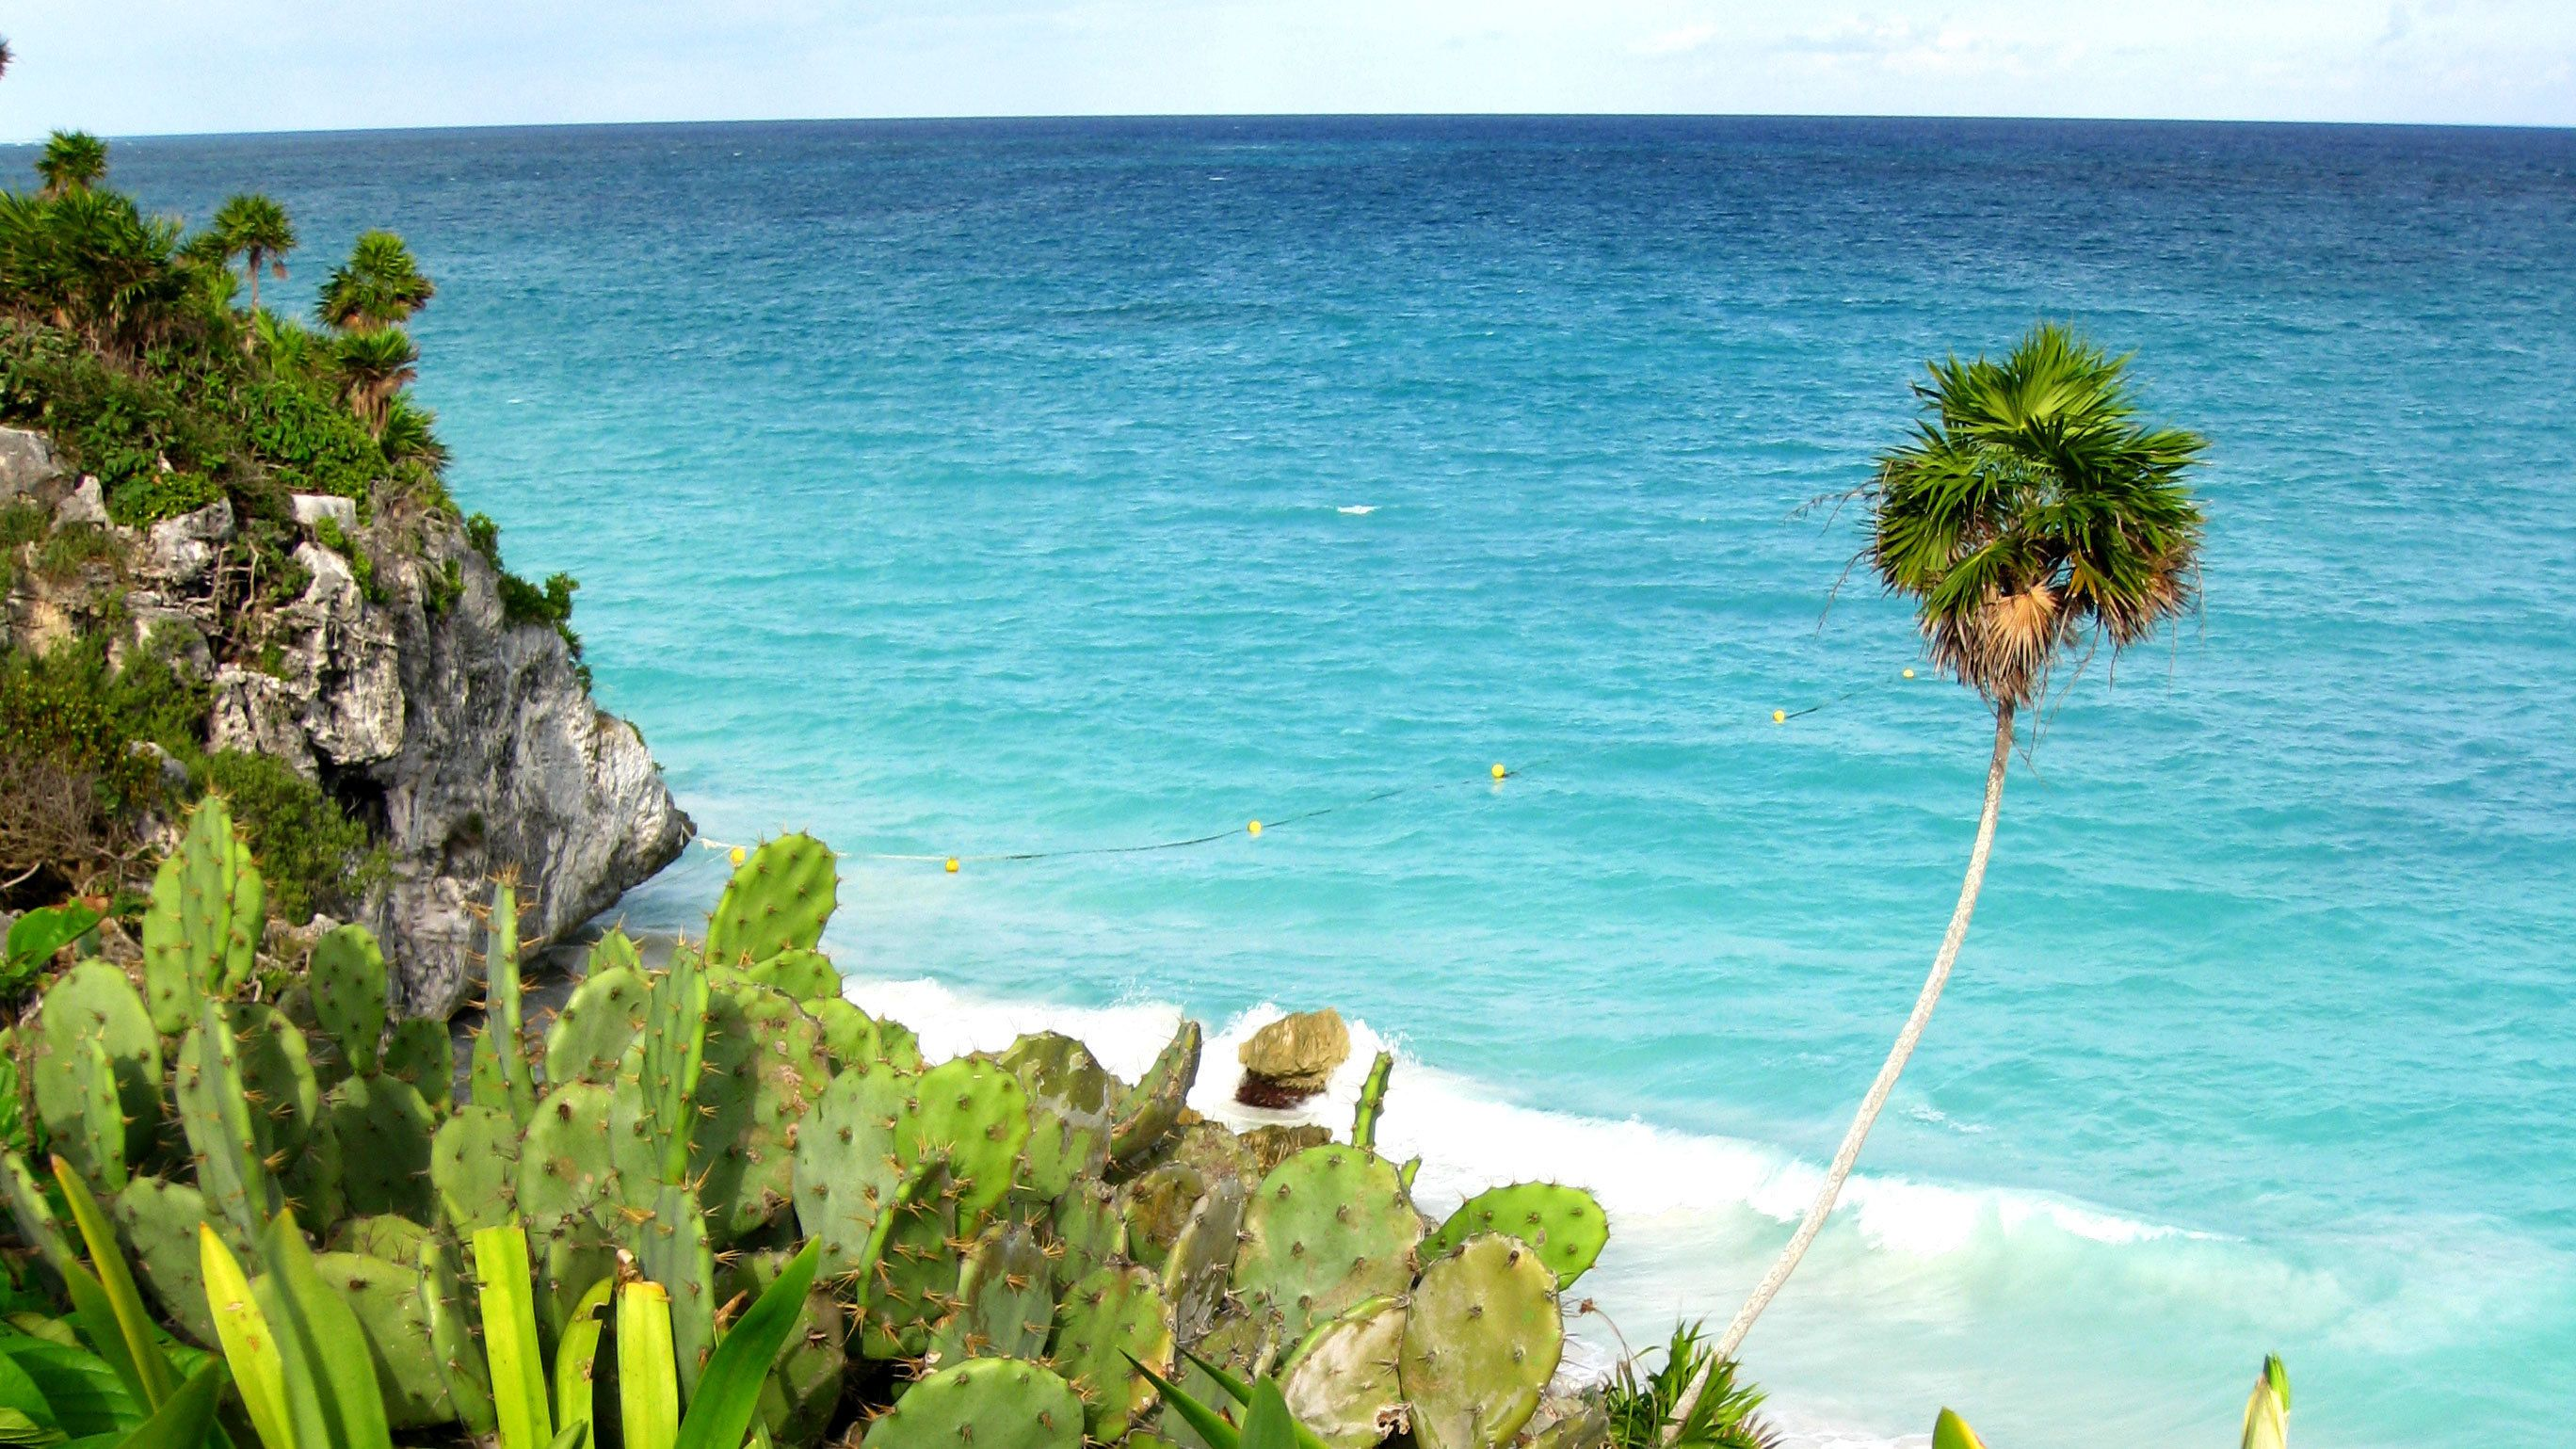 Plants and palm trees line the coast in Mexico